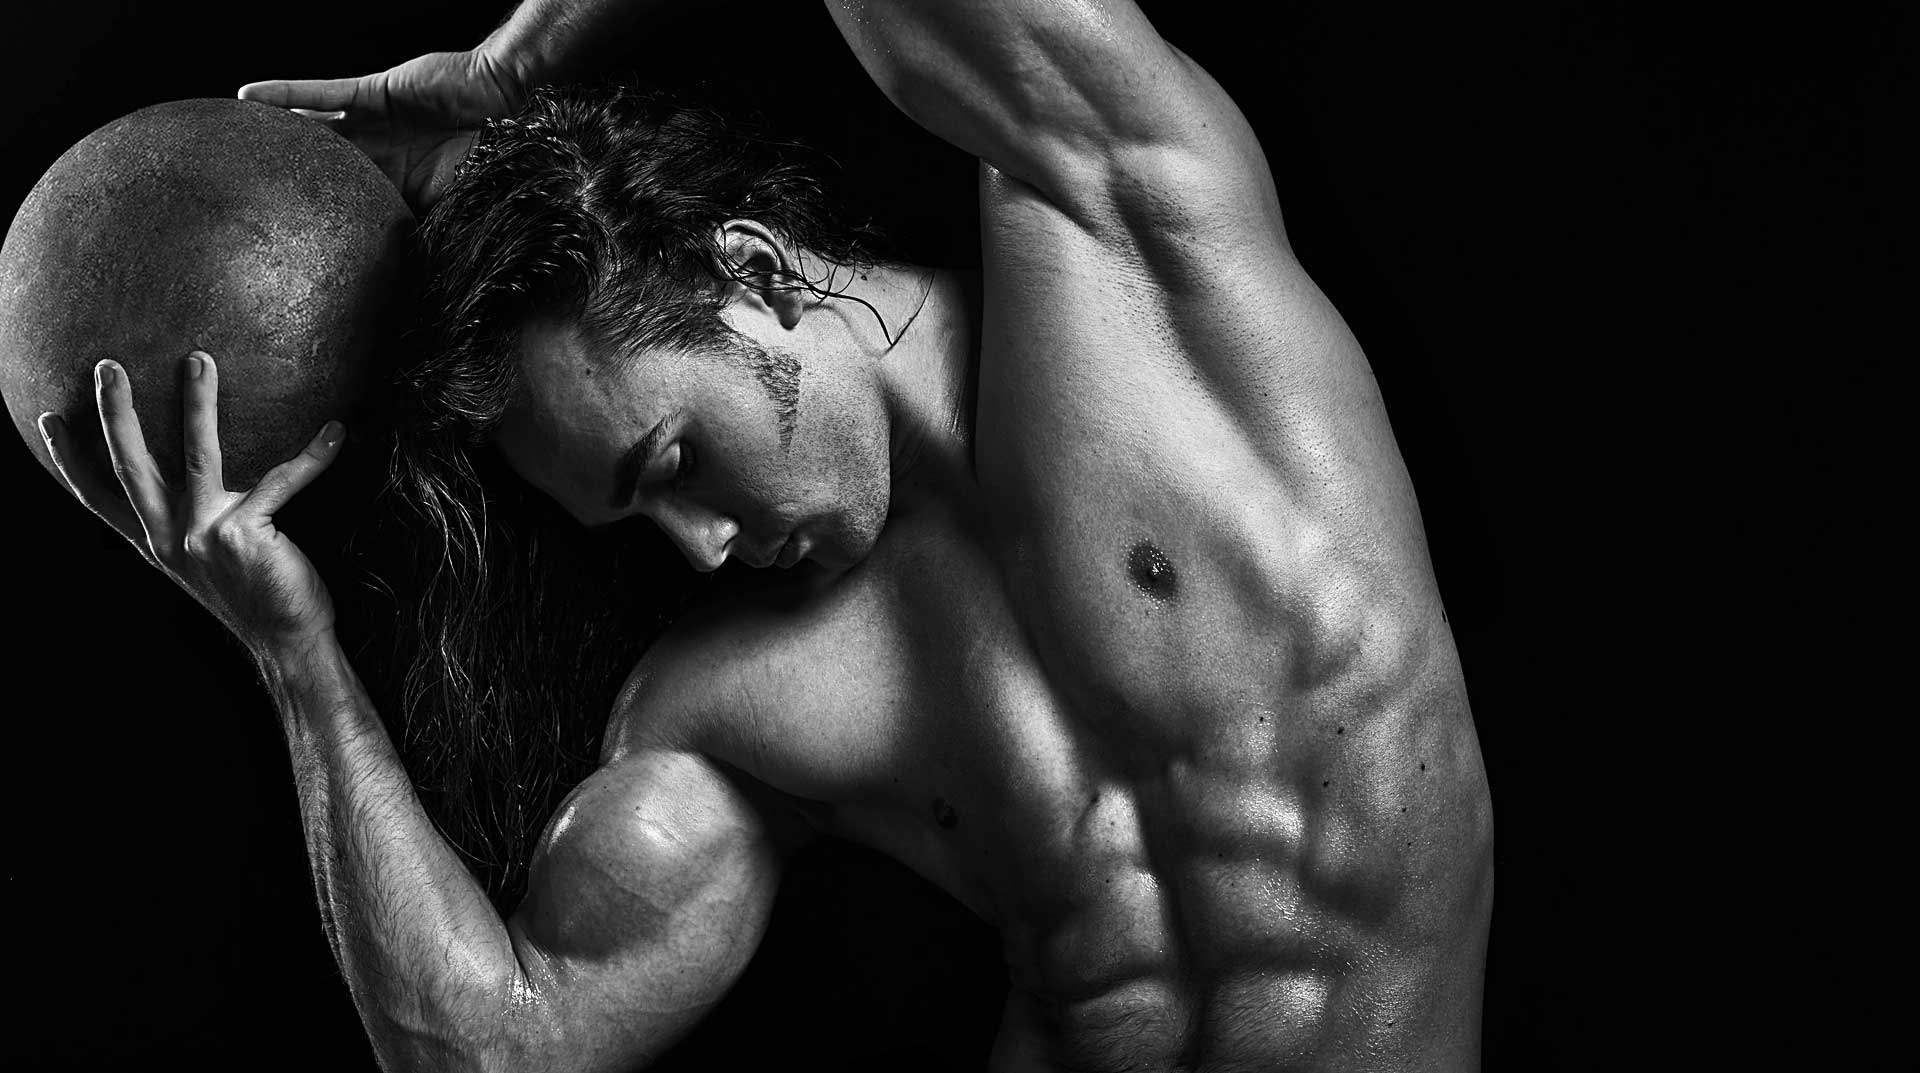 Black and white portrait of bodybuilder holding medicine ball